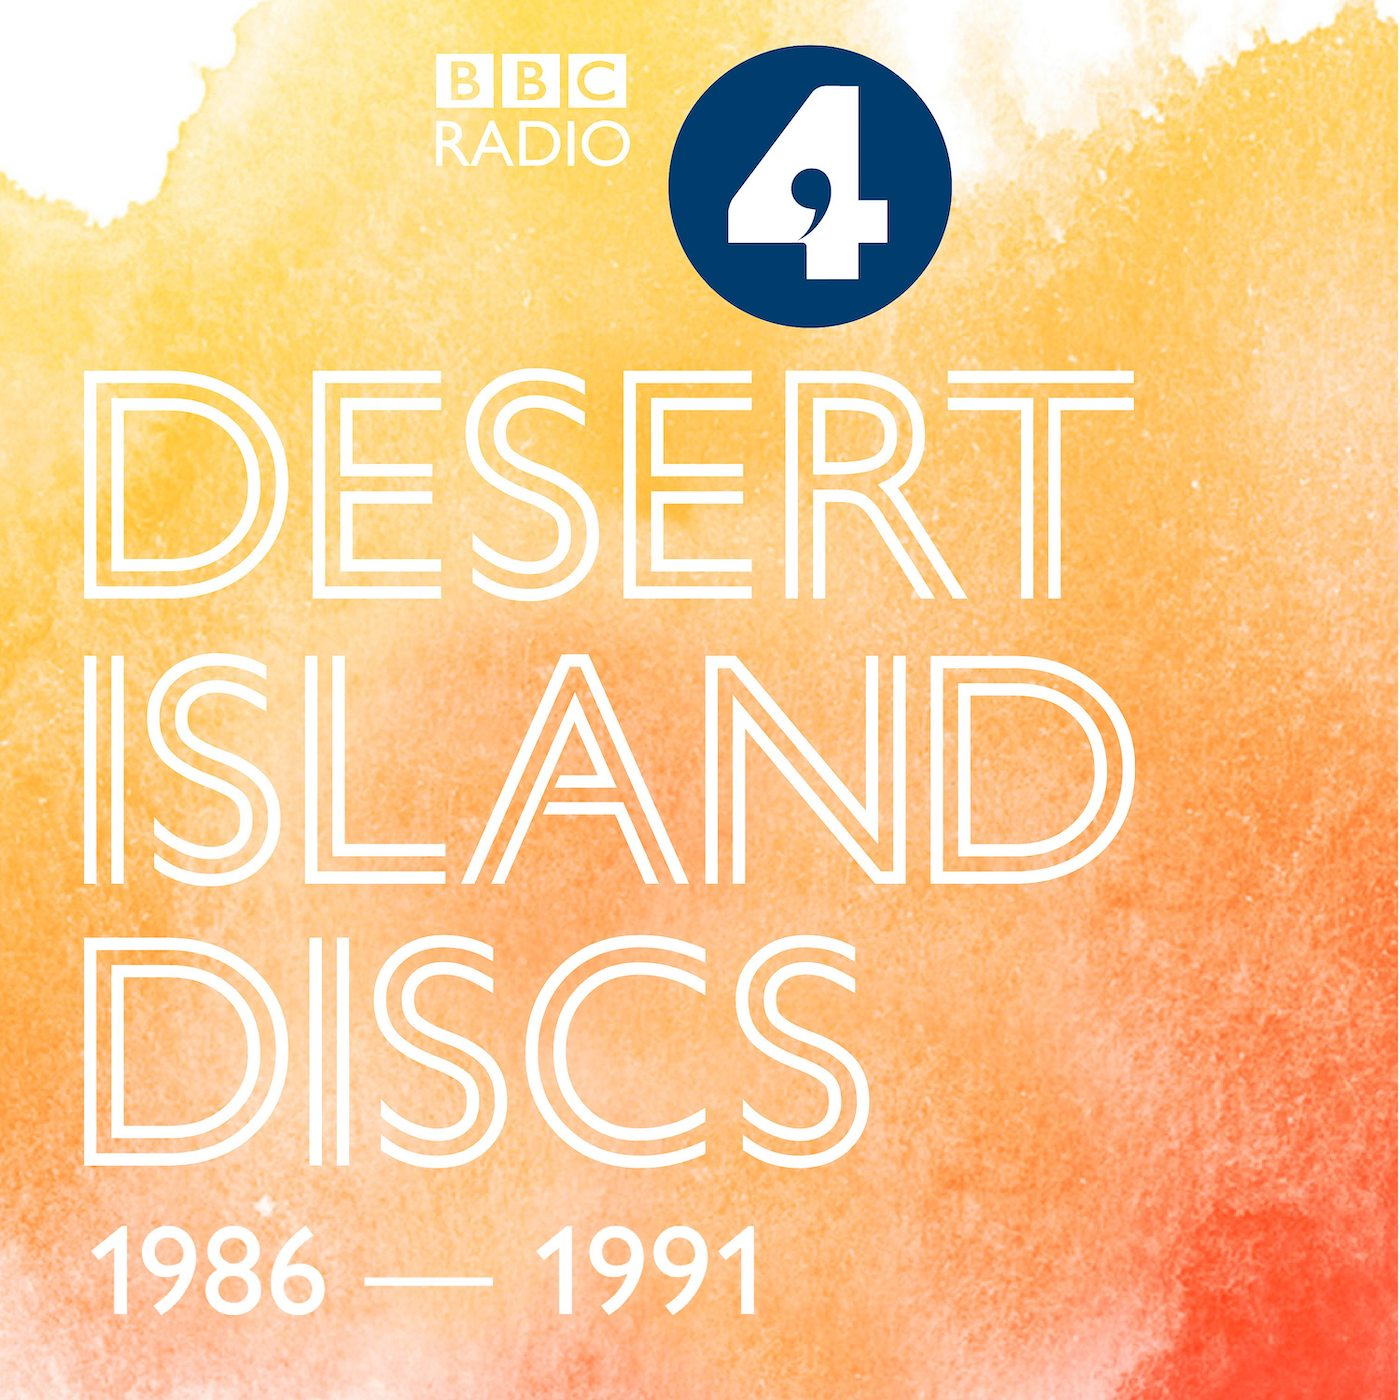 Podcast Cover of Desert Island Discs: Archive 1986-1991